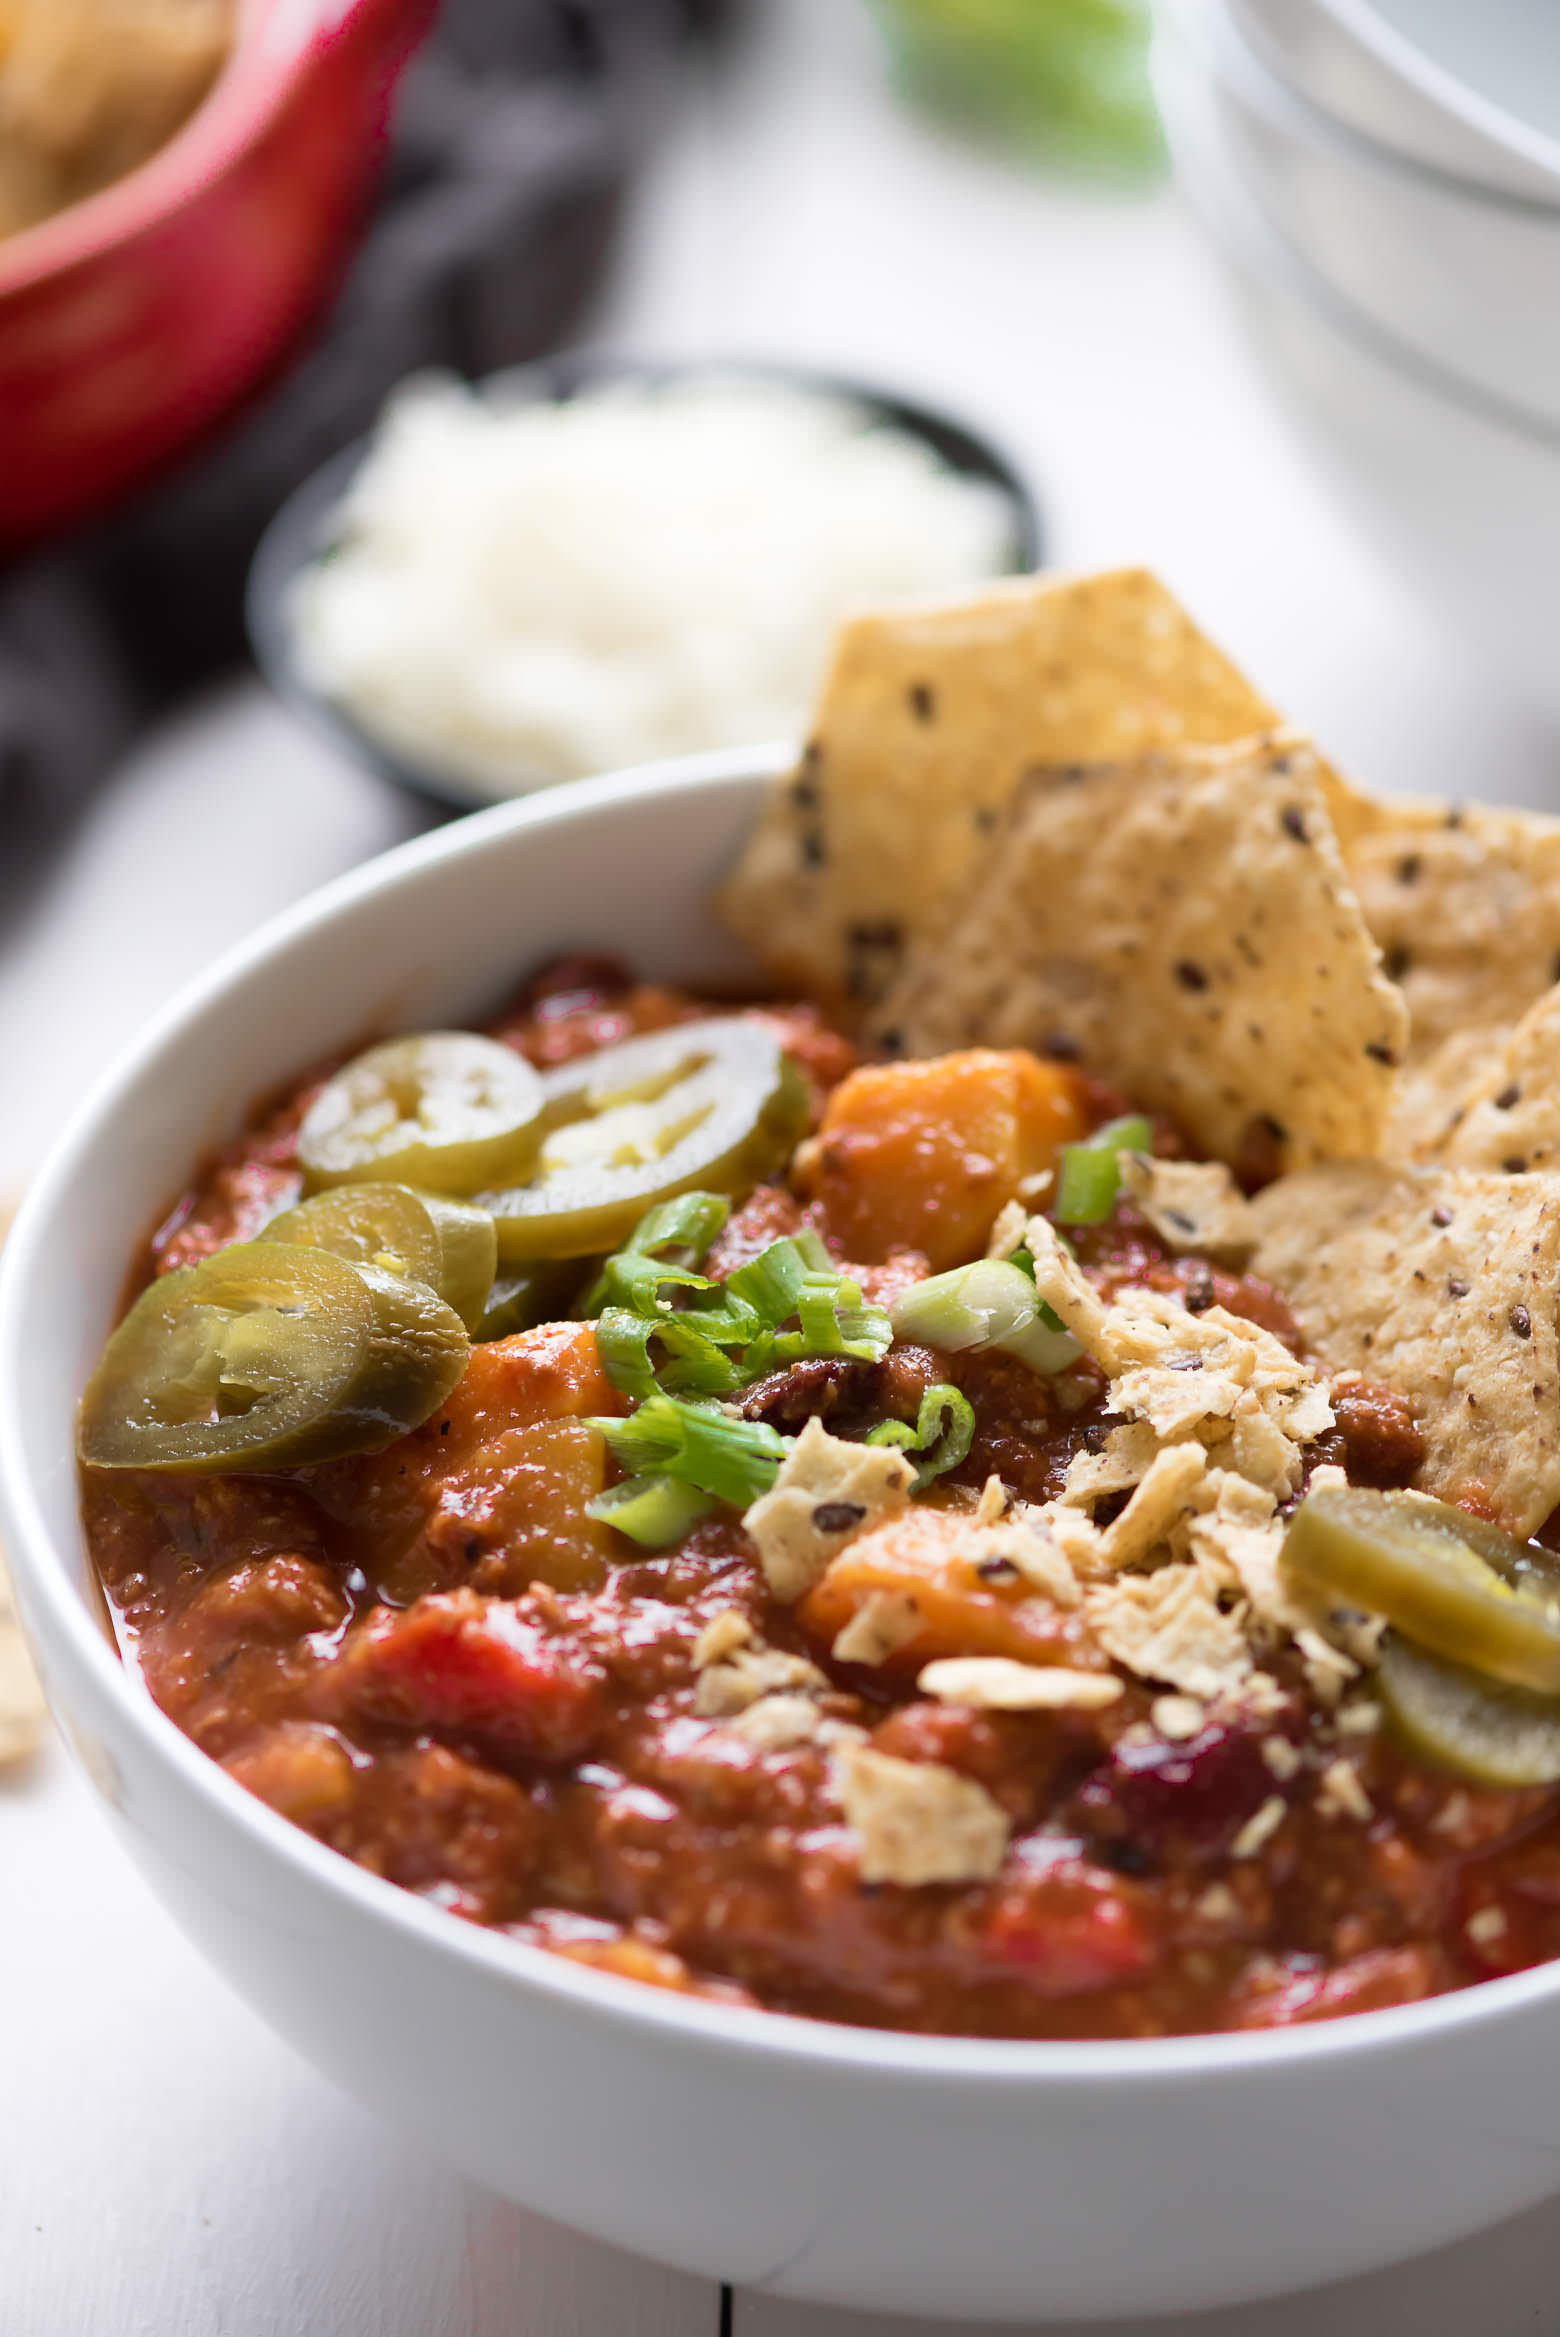 Slow Cooker Ground Turkey Recipes Healthy  Healthy Slow Cooker Chili